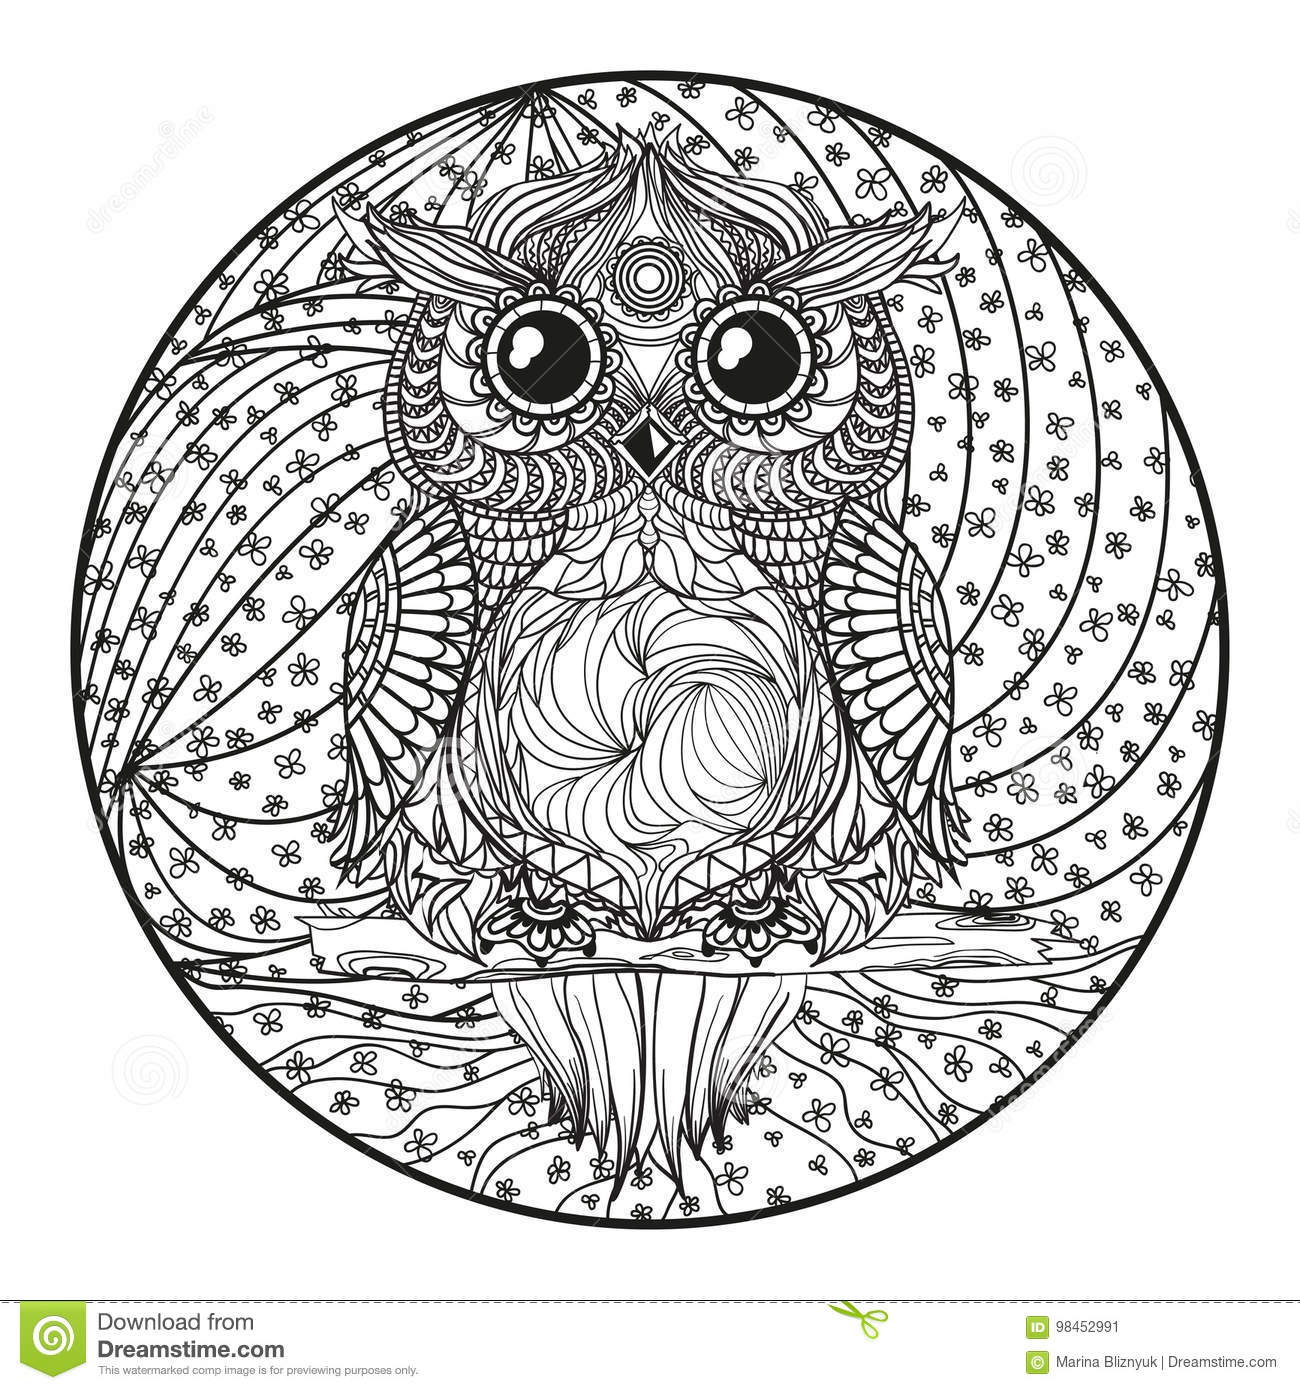 Mandala Hibou Zentangle Illustration De Vecteur